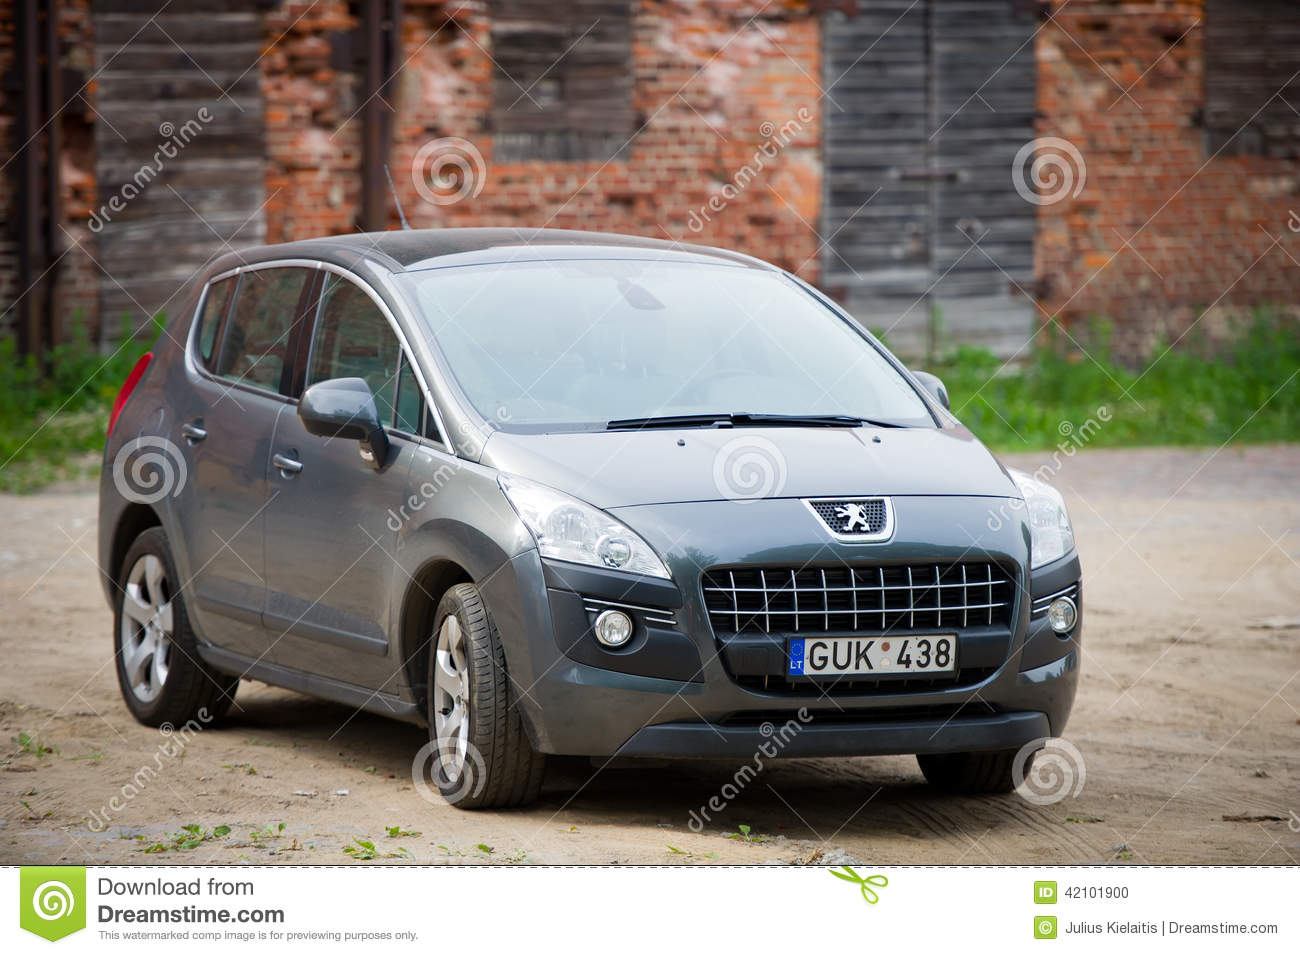 peugeot 3008 parked up in klaipeda old town editorial image image of class 2014 42101900. Black Bedroom Furniture Sets. Home Design Ideas